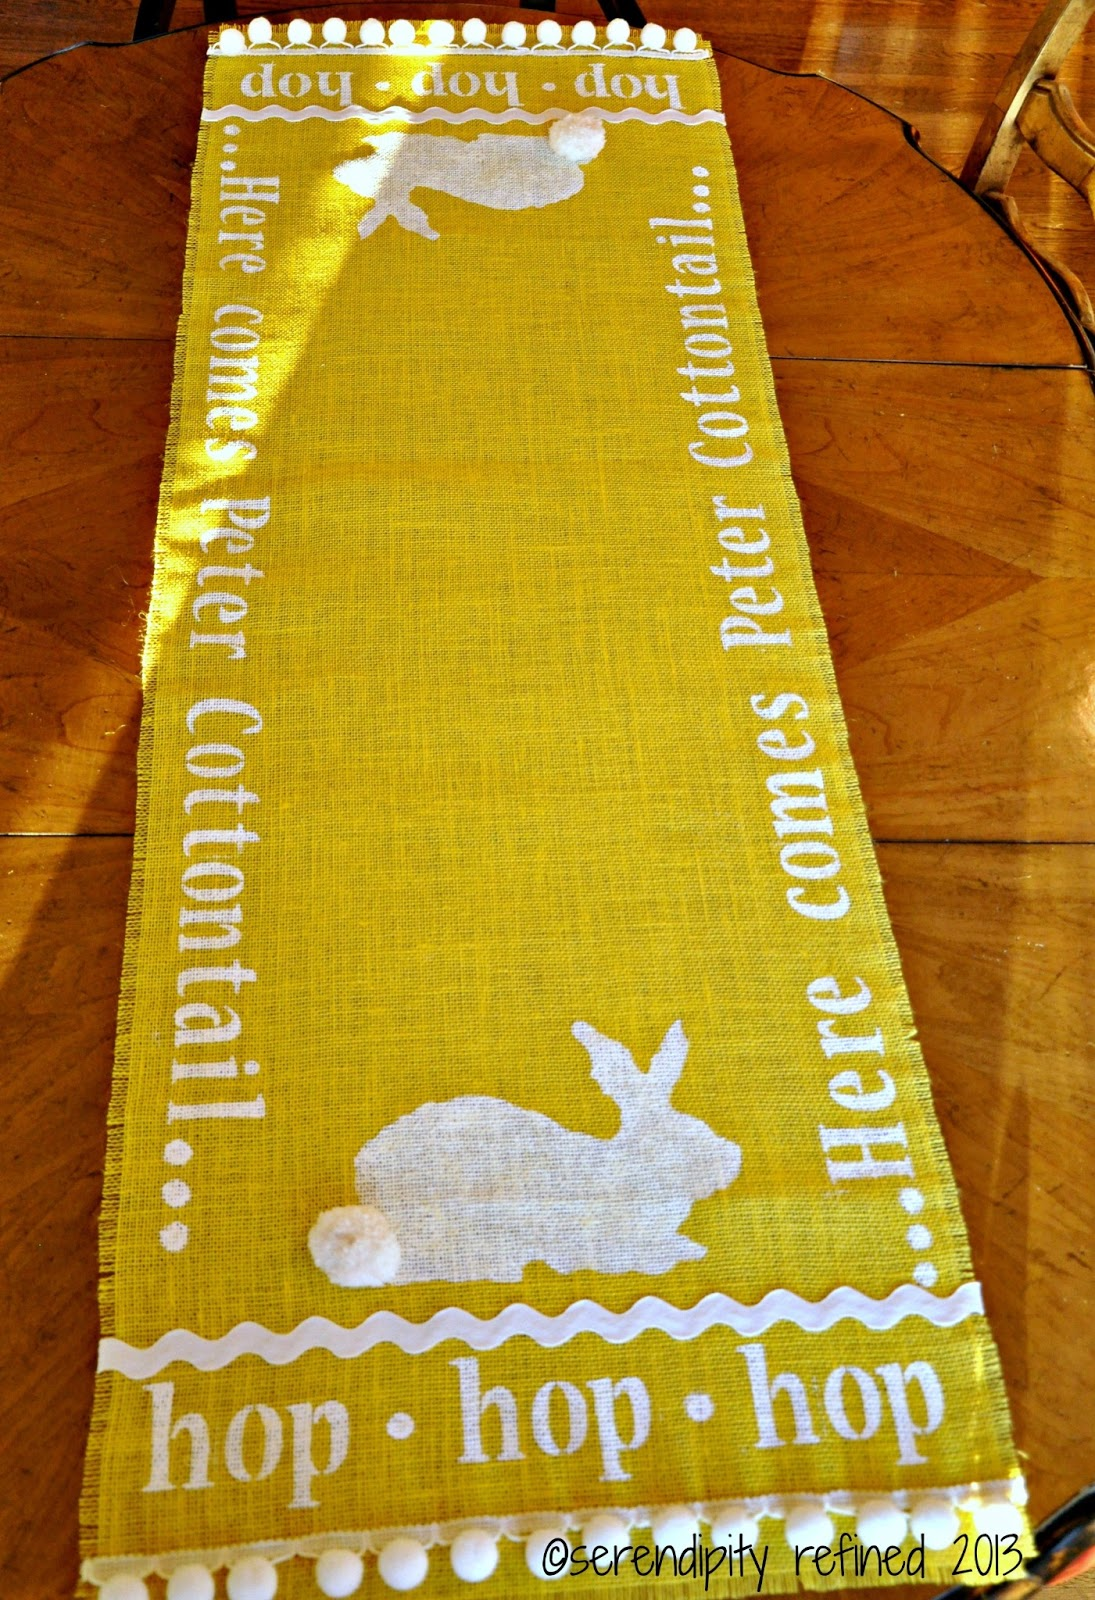 Serendipity Refined Blog: Stenciled Burlap Bunny Table Runner